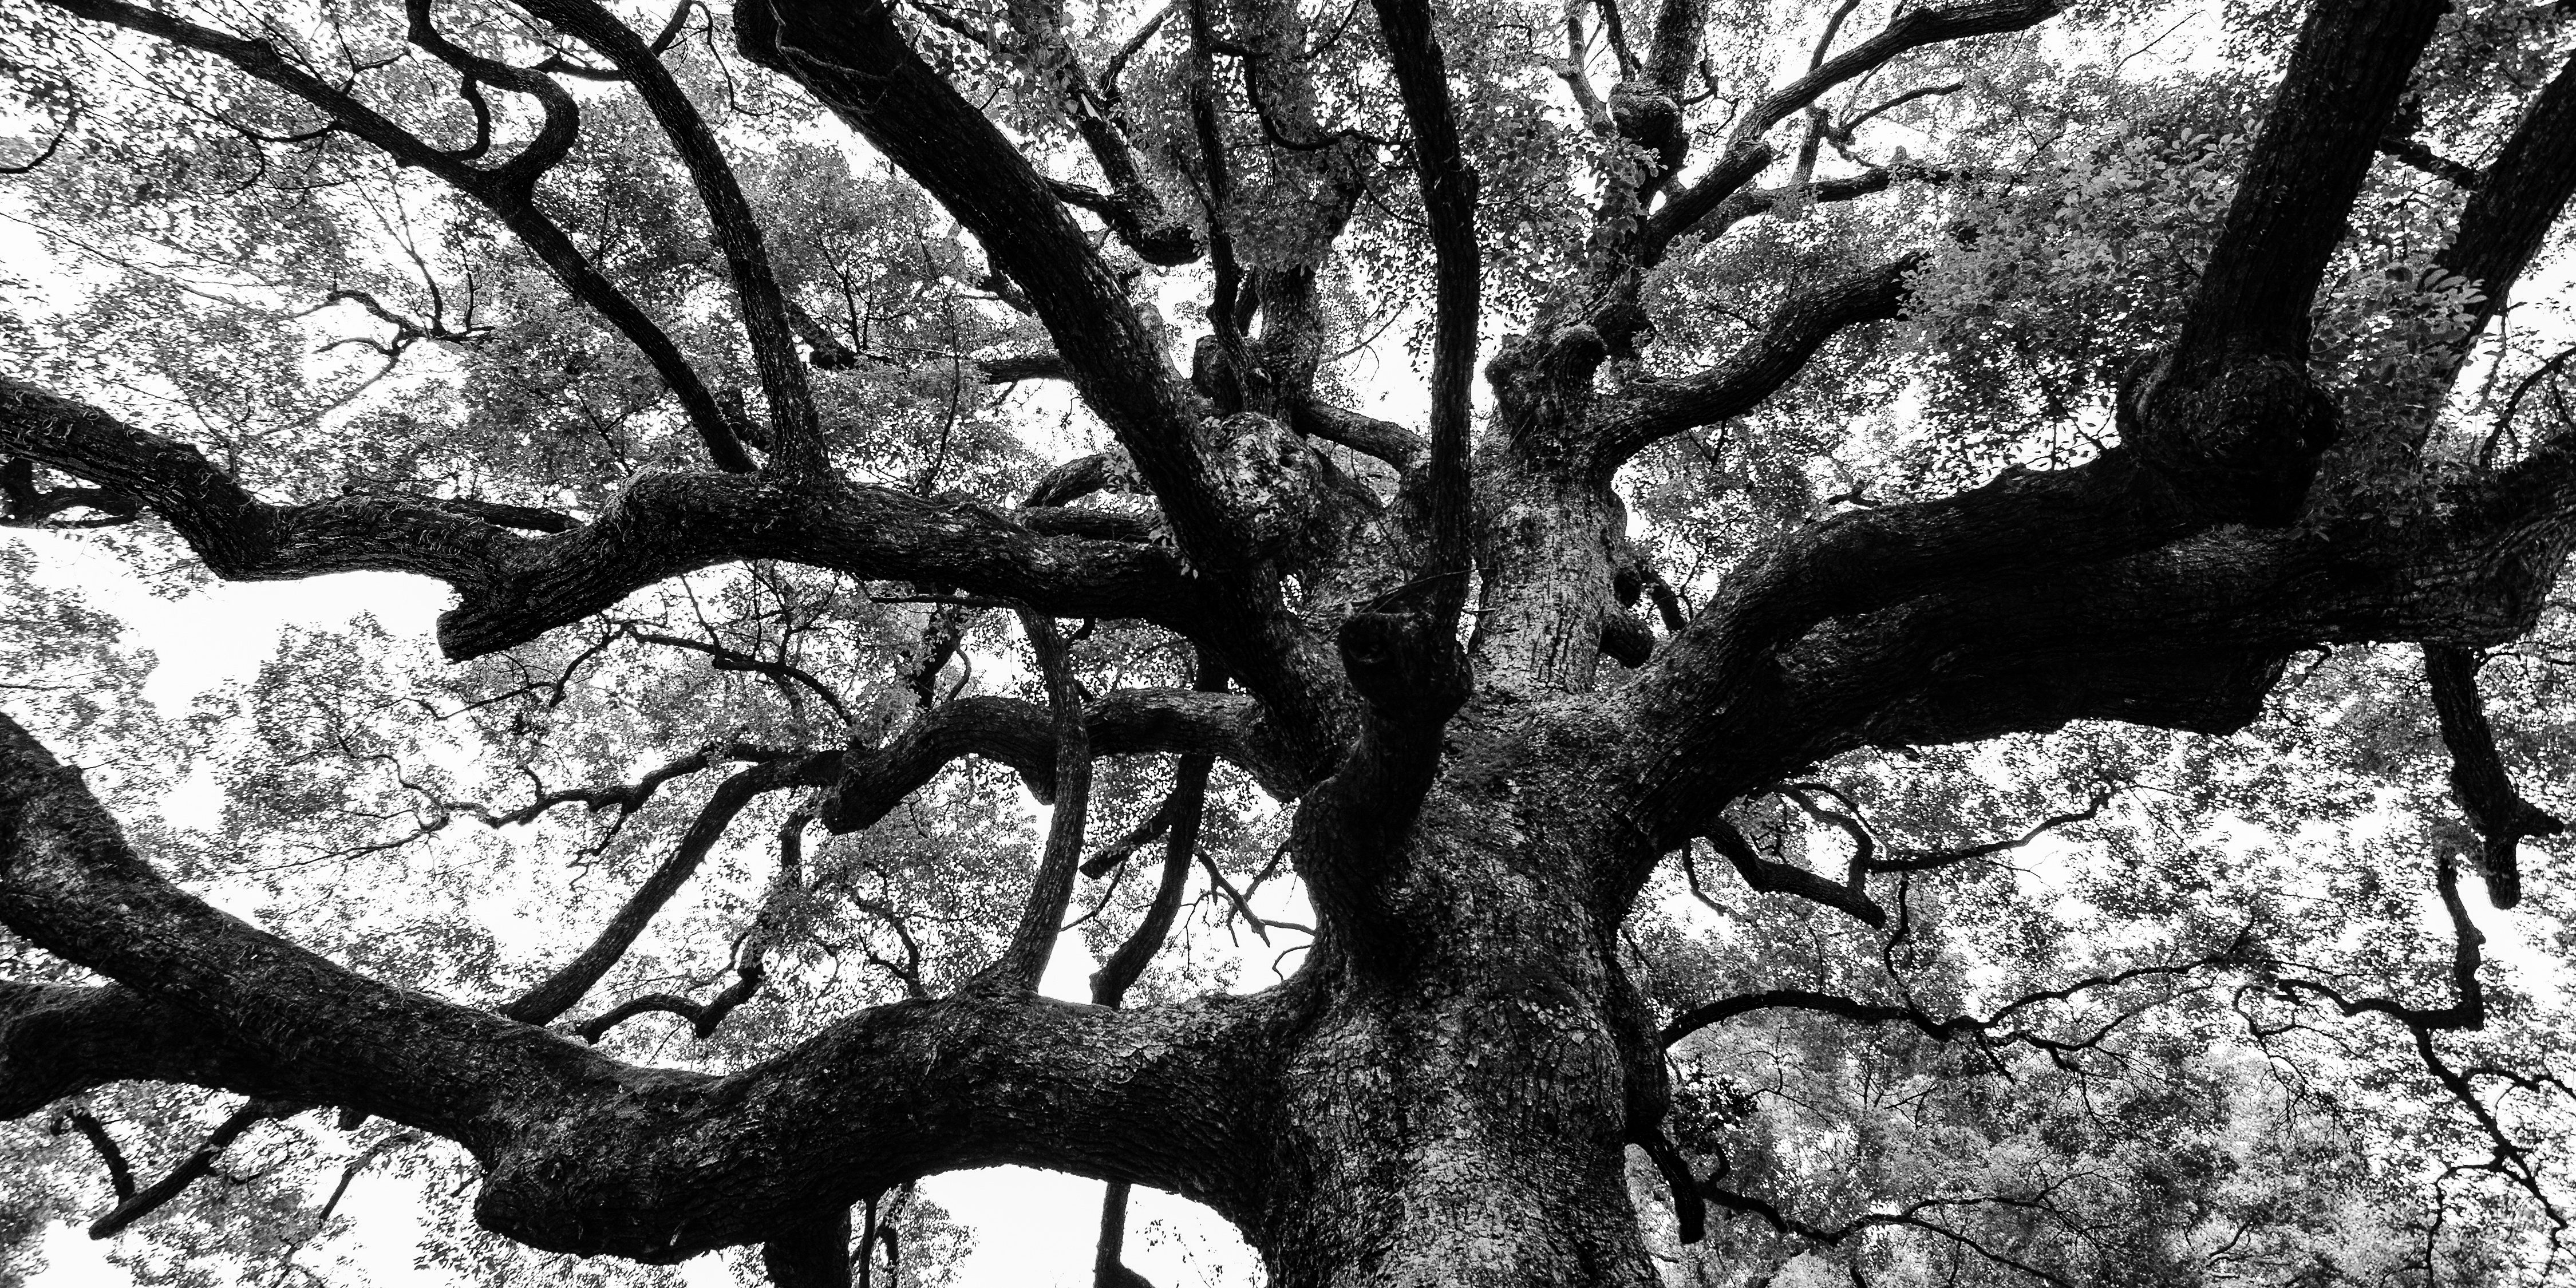 Black and white nature photo of a very old oak tree with long branches and sturdy roots.